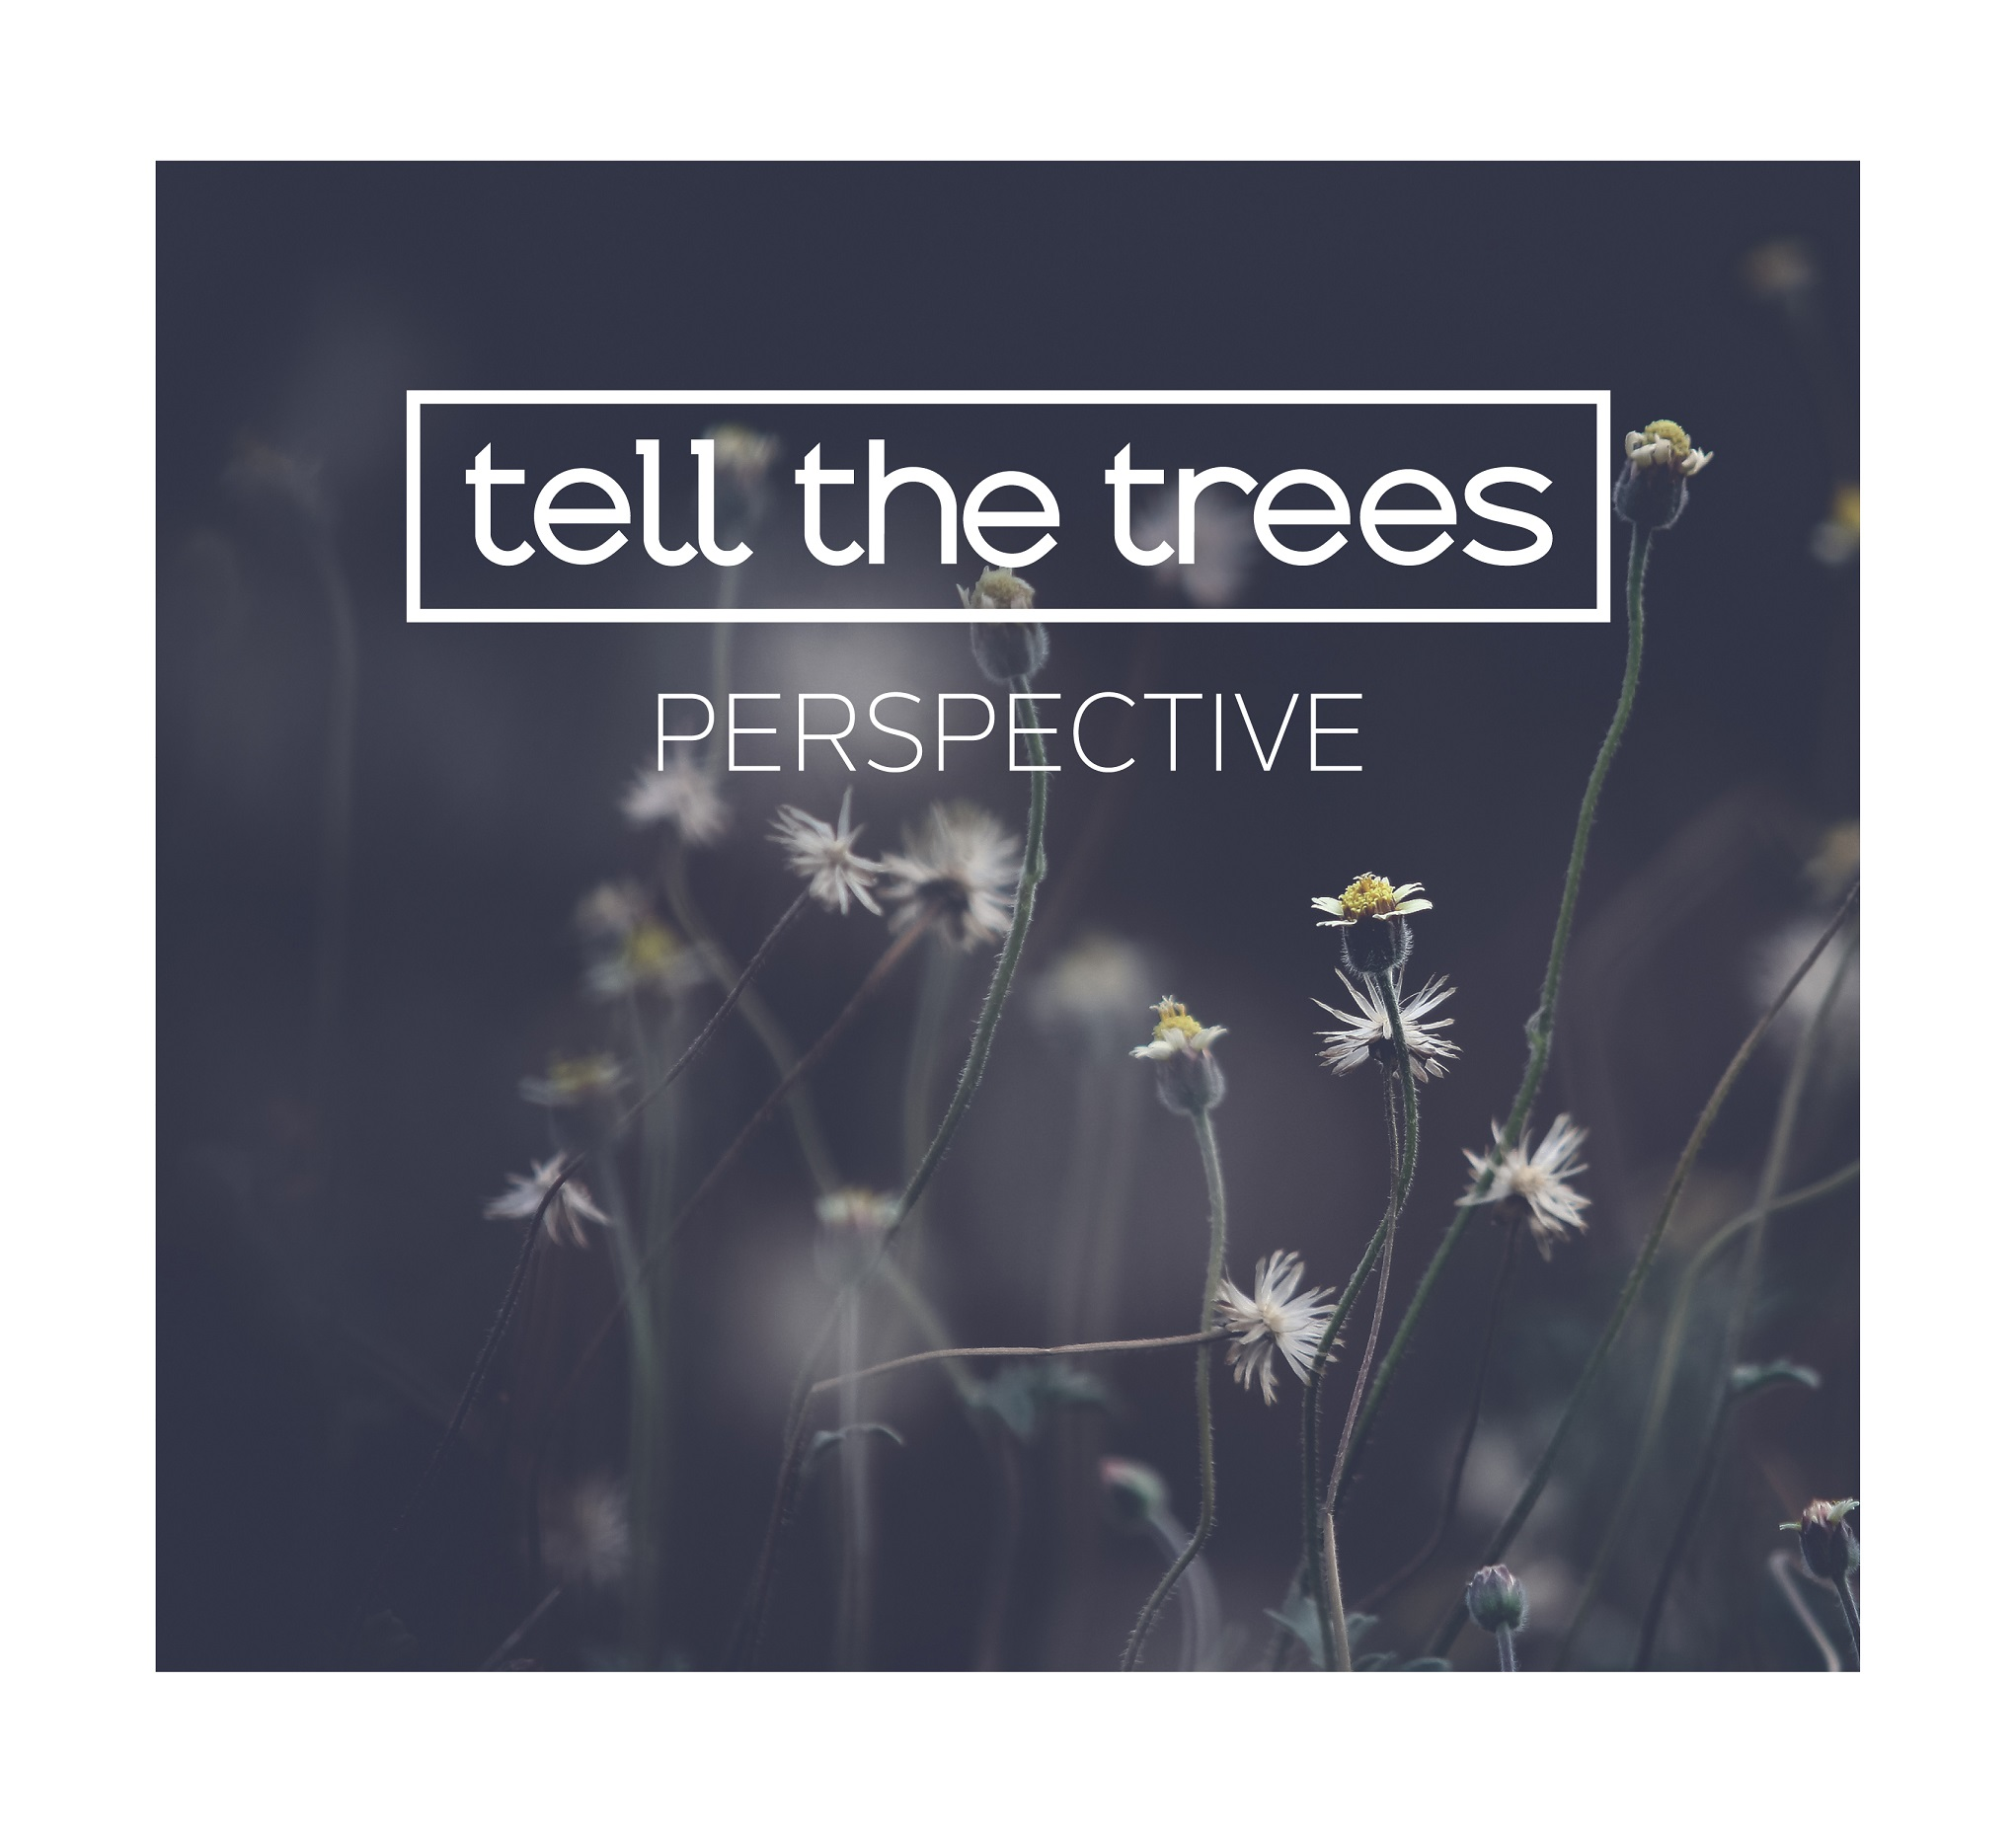 CD Kritik: Tell The Trees - Perspective